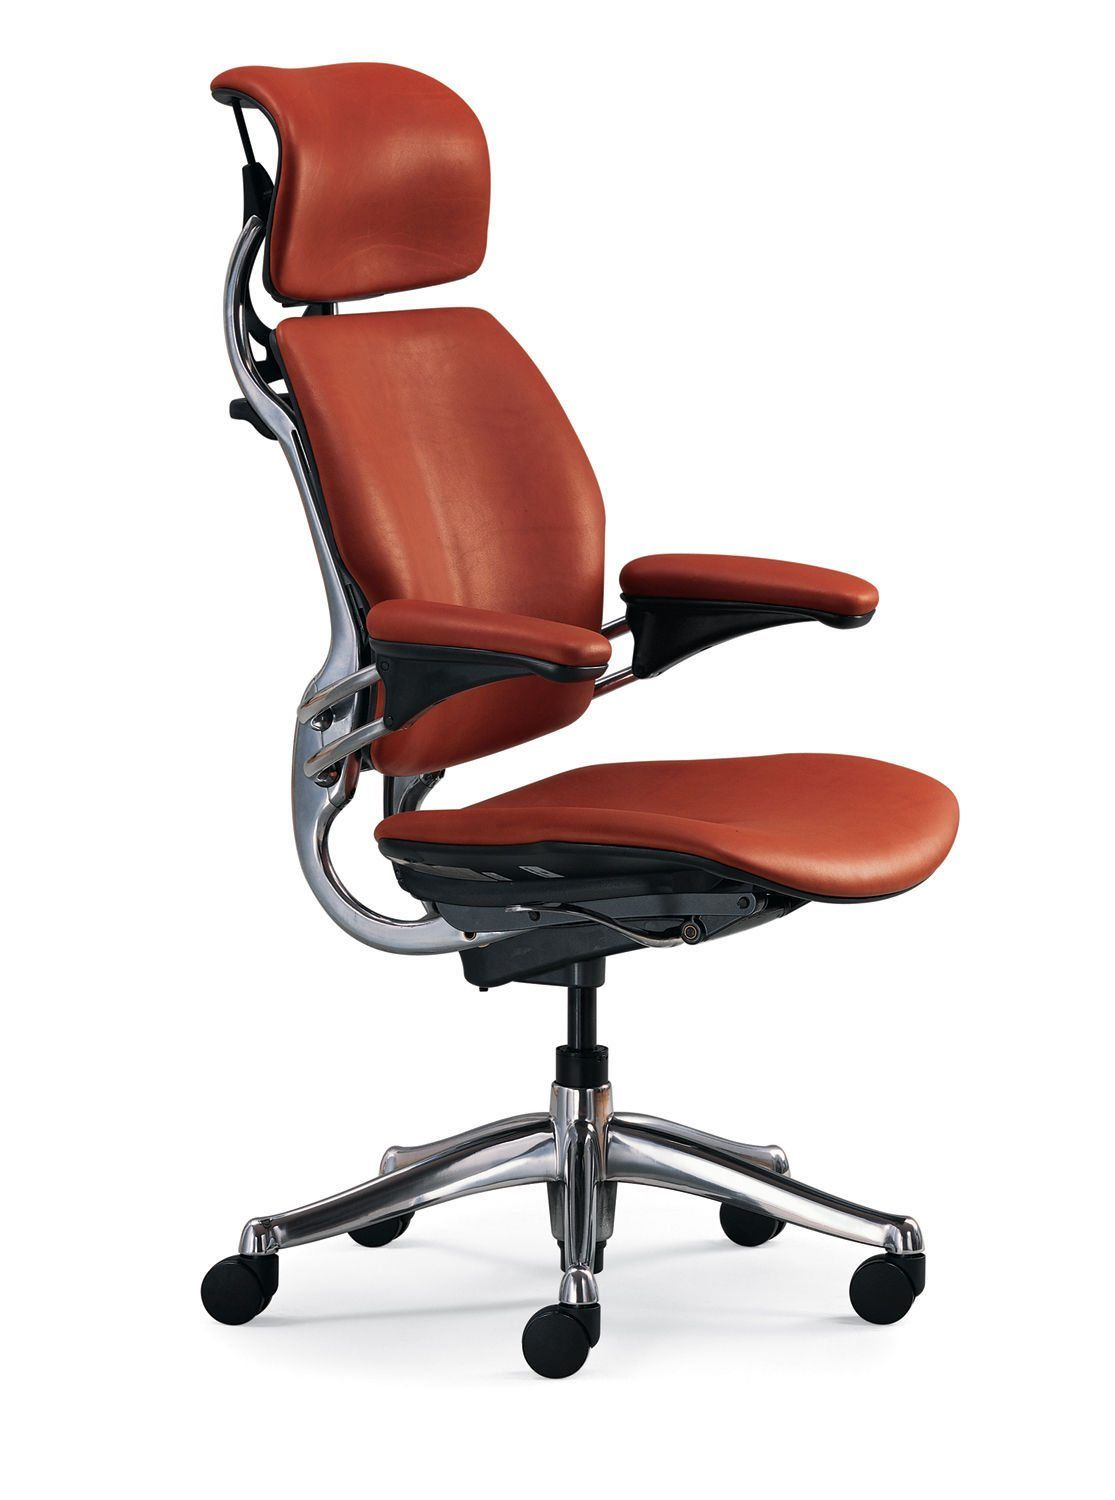 Most Ergonomic Office Chair Cute Freedom Office Chair Best Office Chair In 2019 Office